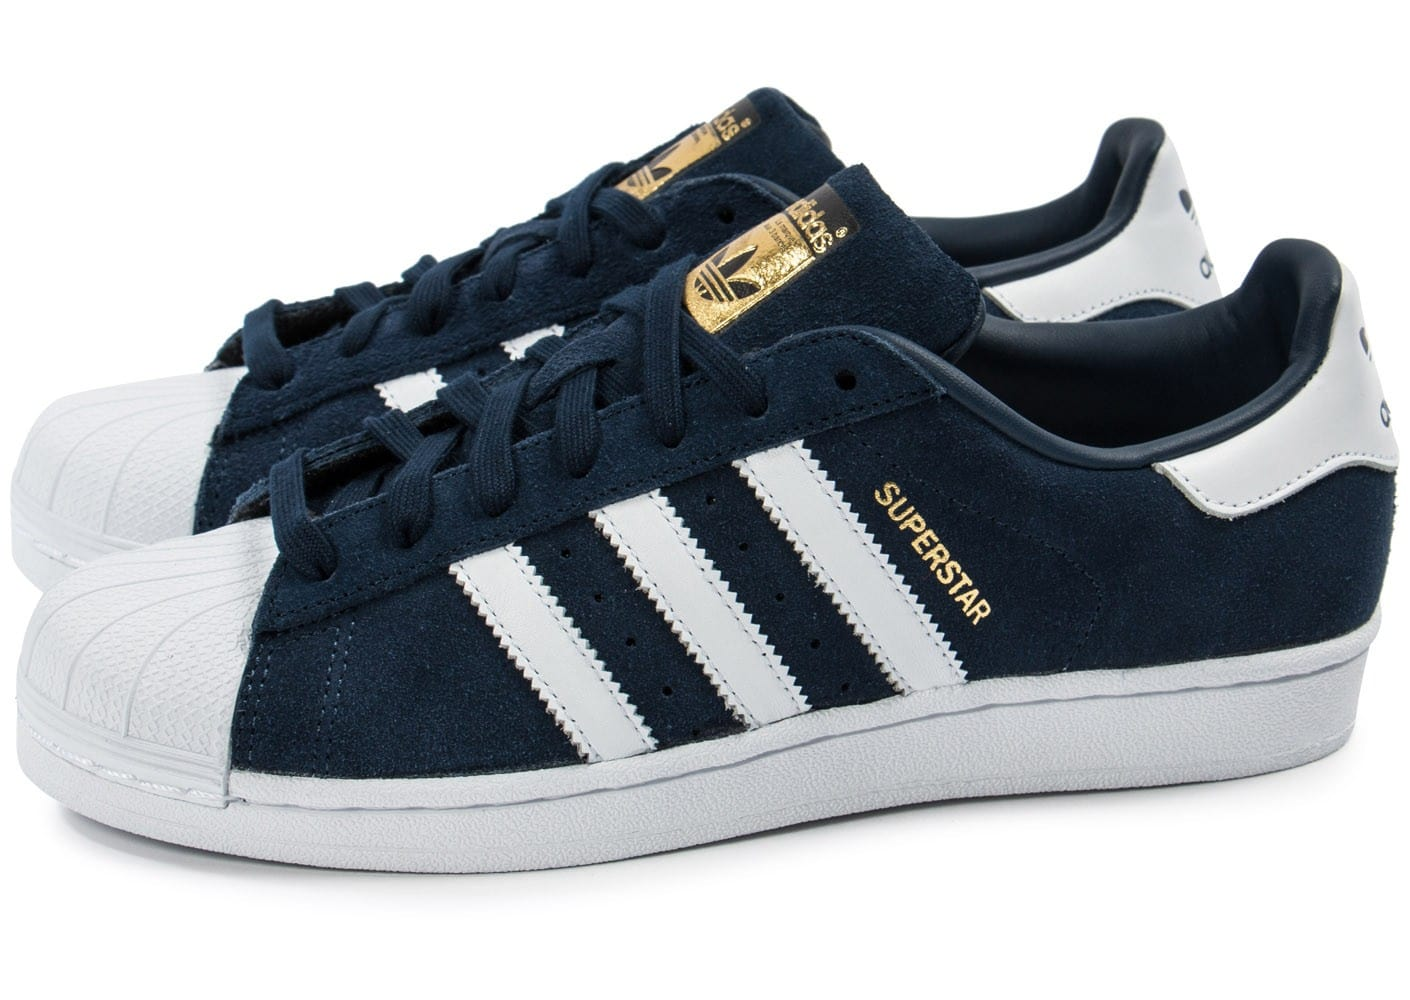 adidas Superstar Suede bleu marine Chaussures Baskets